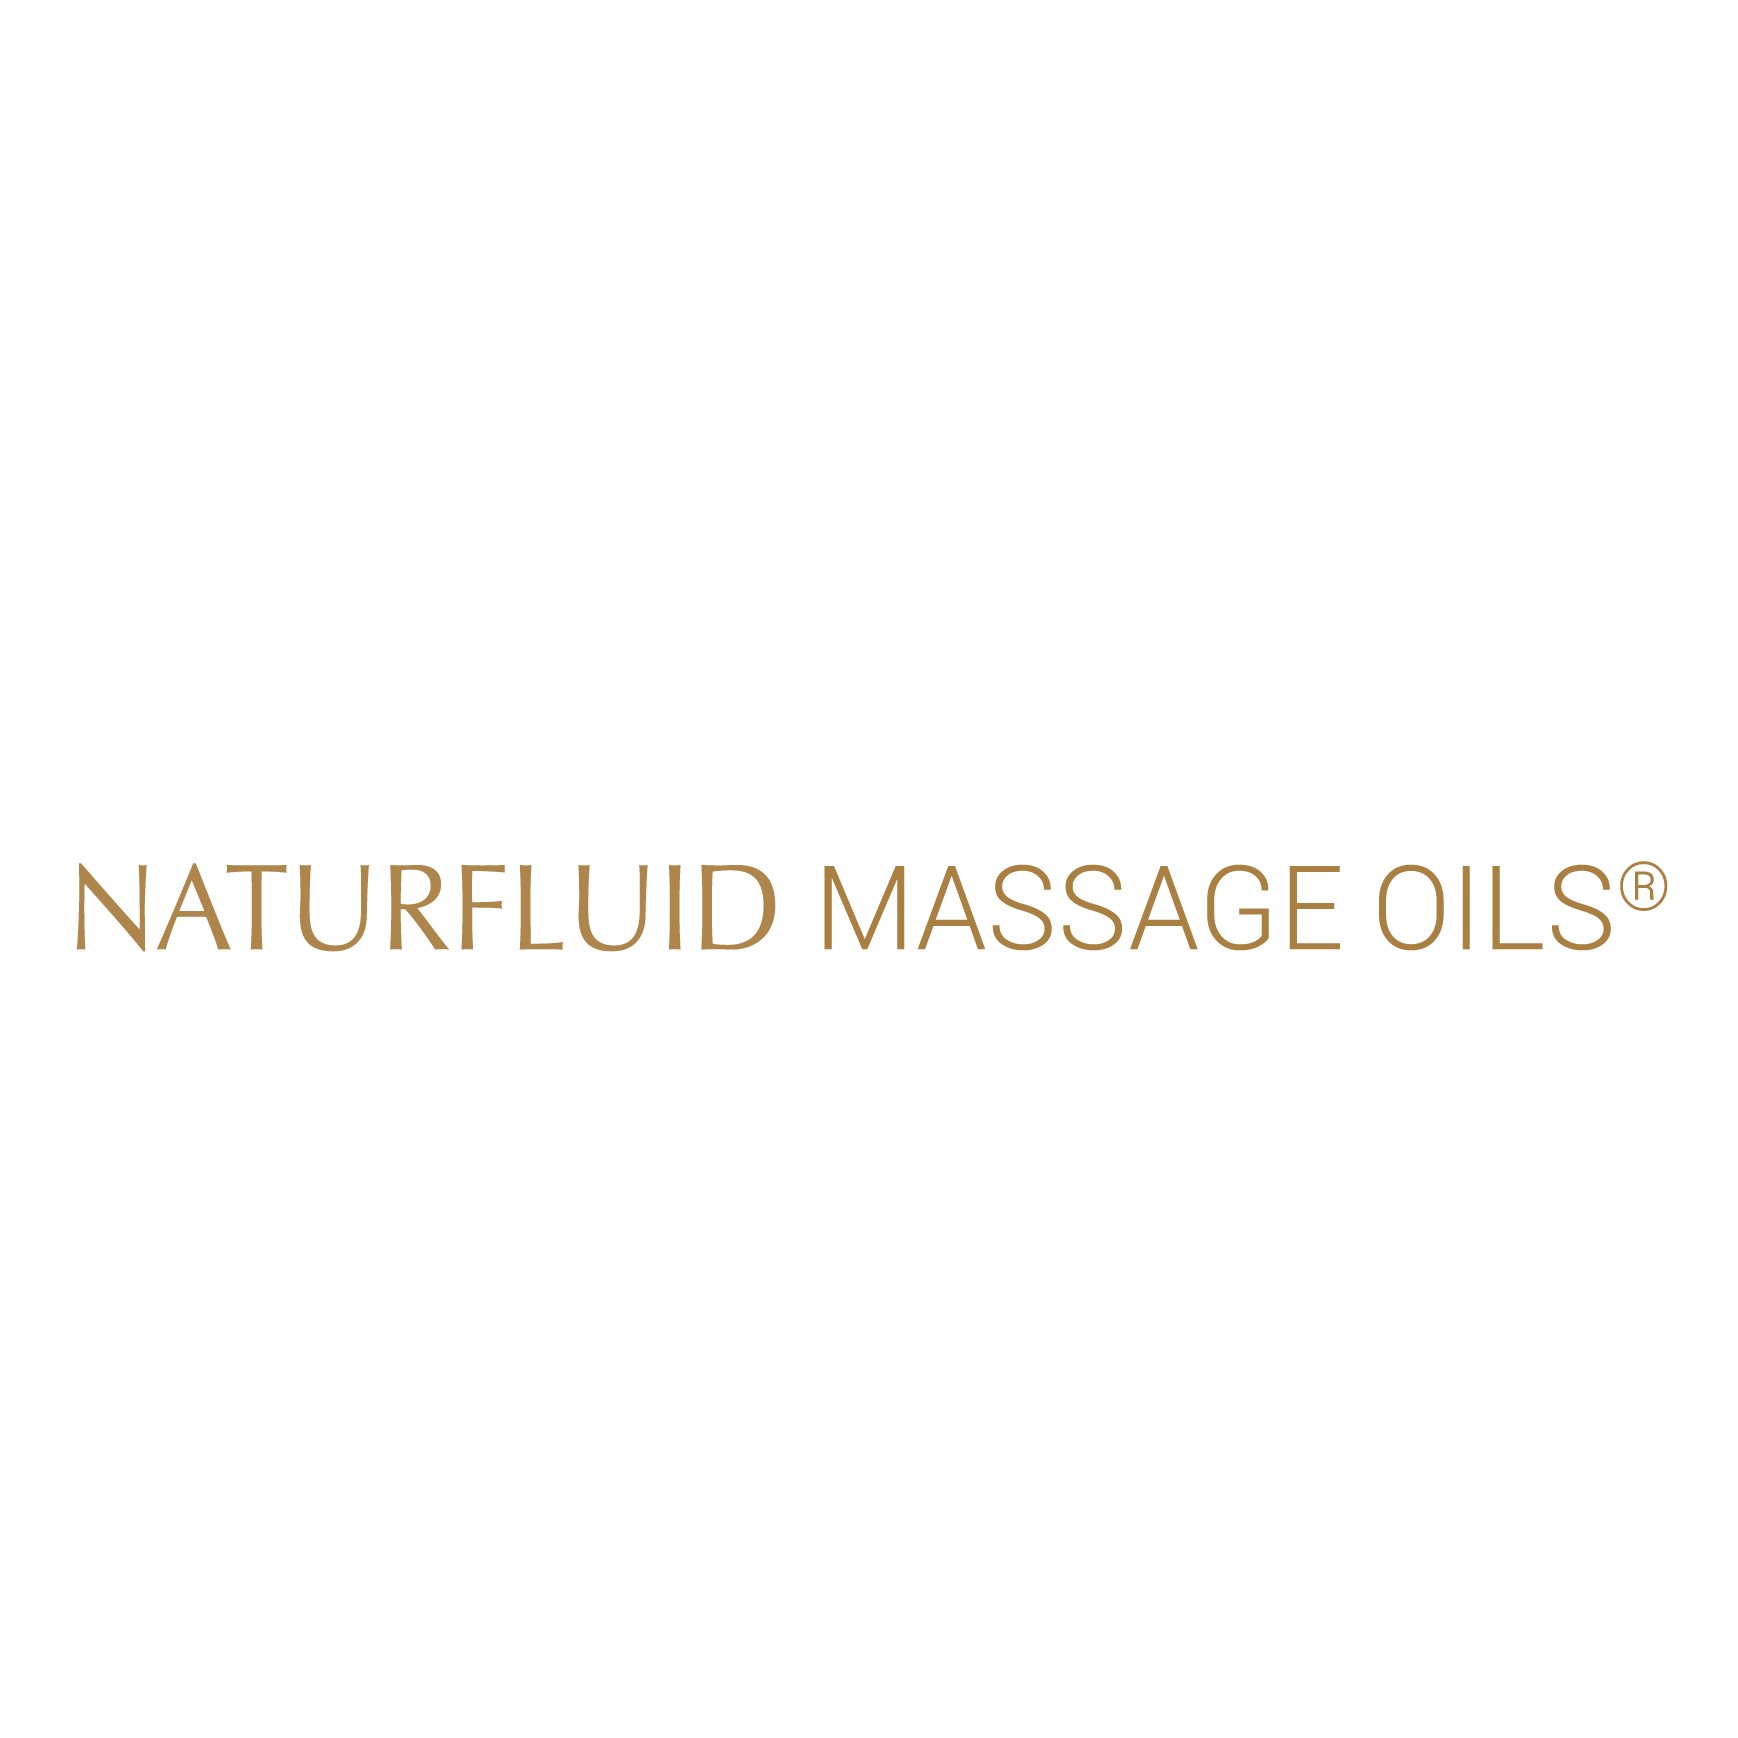 Naturfluid Massage Oil